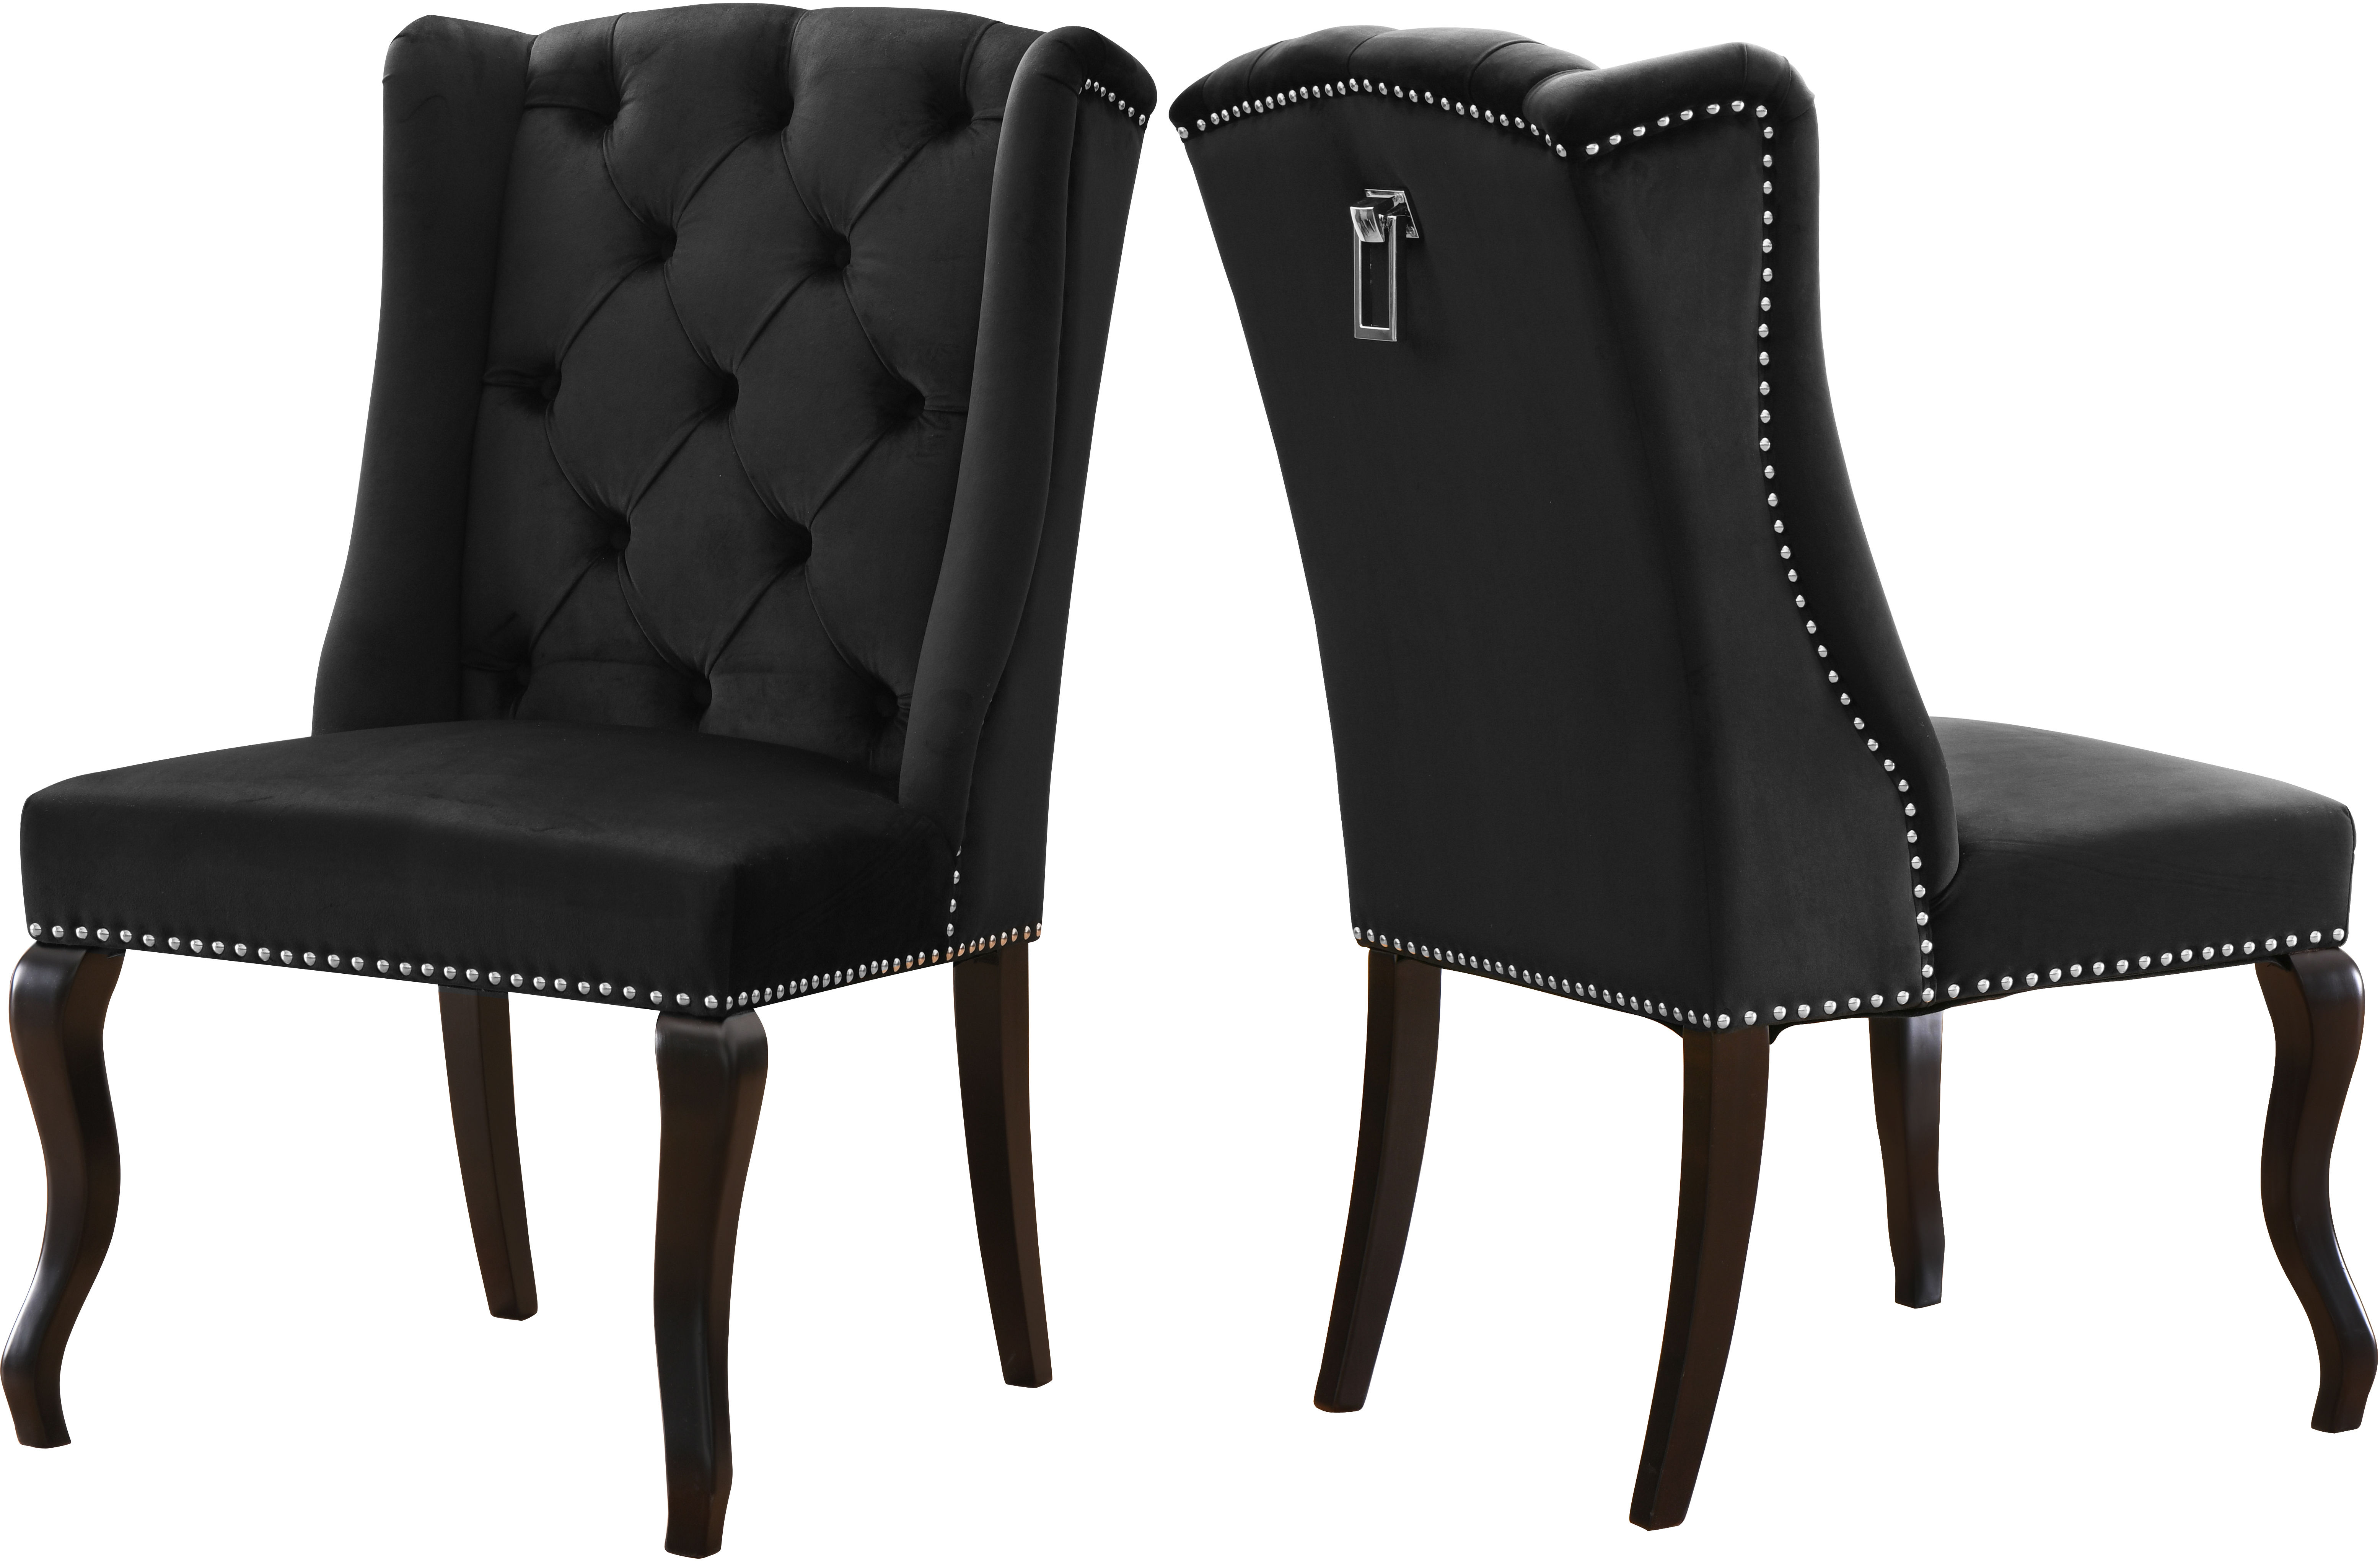 2 Meridian Furniture Suri Black Velvet Dining Chairs The Classy Home